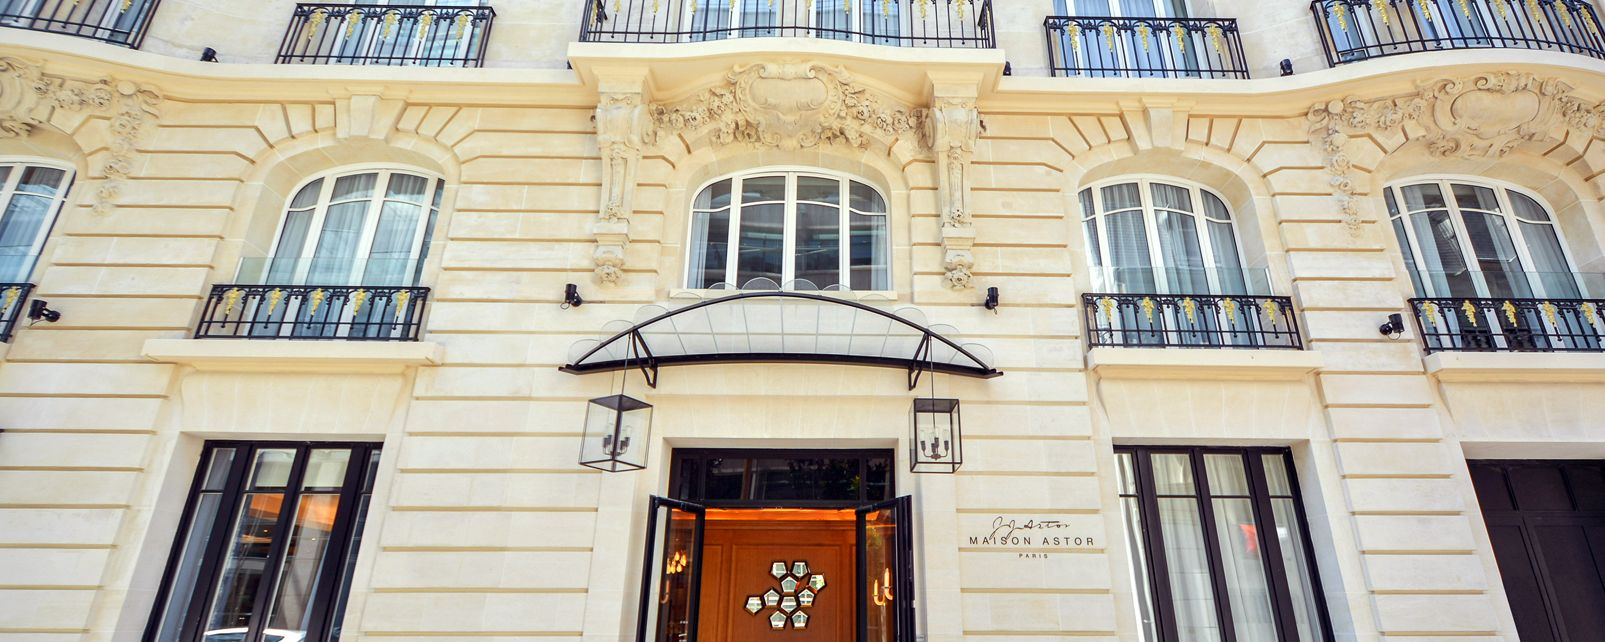 Hotel Maison Astor Paris Curio Collection by Hilton